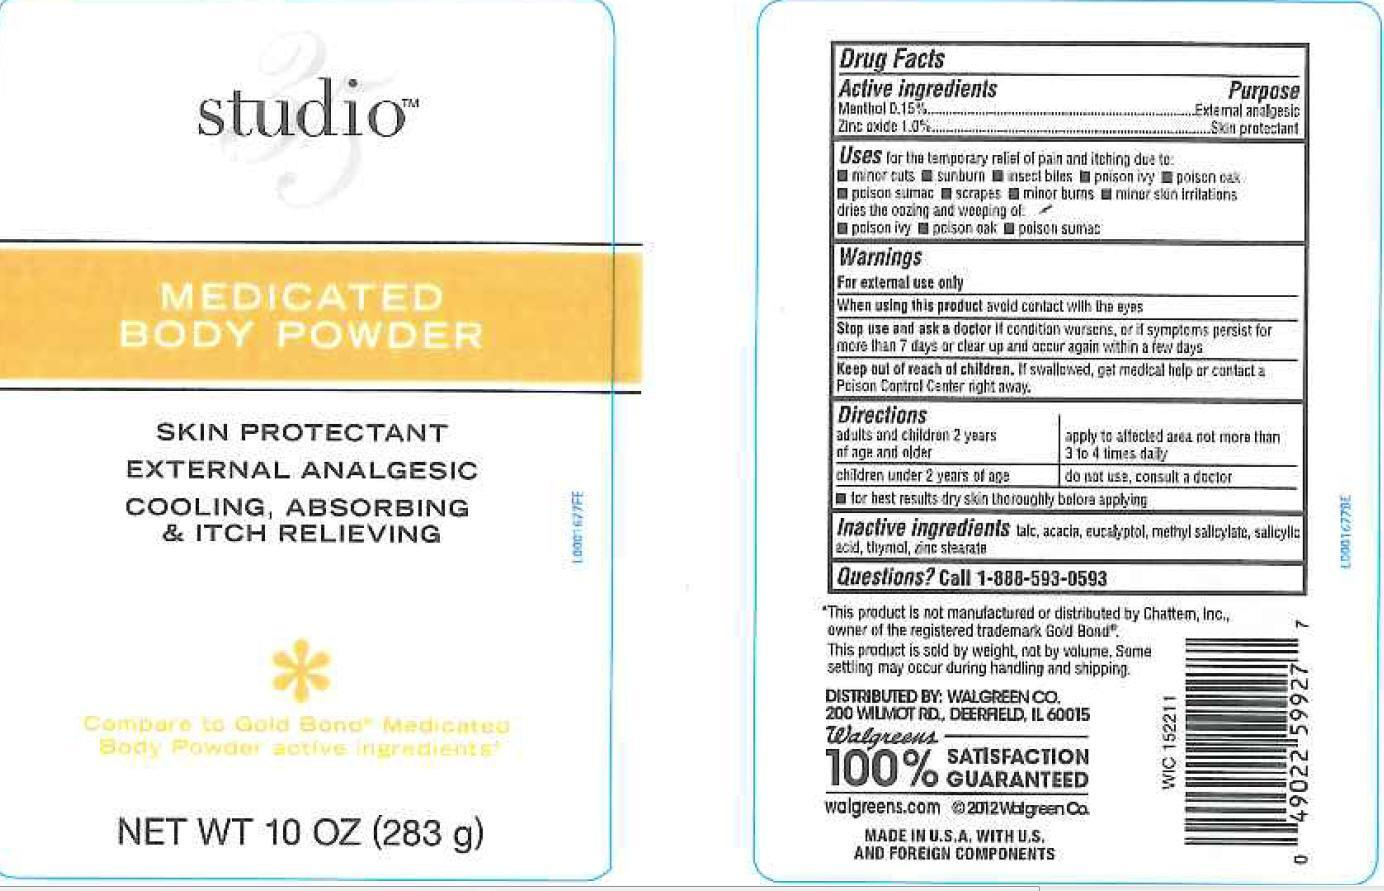 Body (Menthol, Zinc Oxide) Powder [Walgreen Co.]